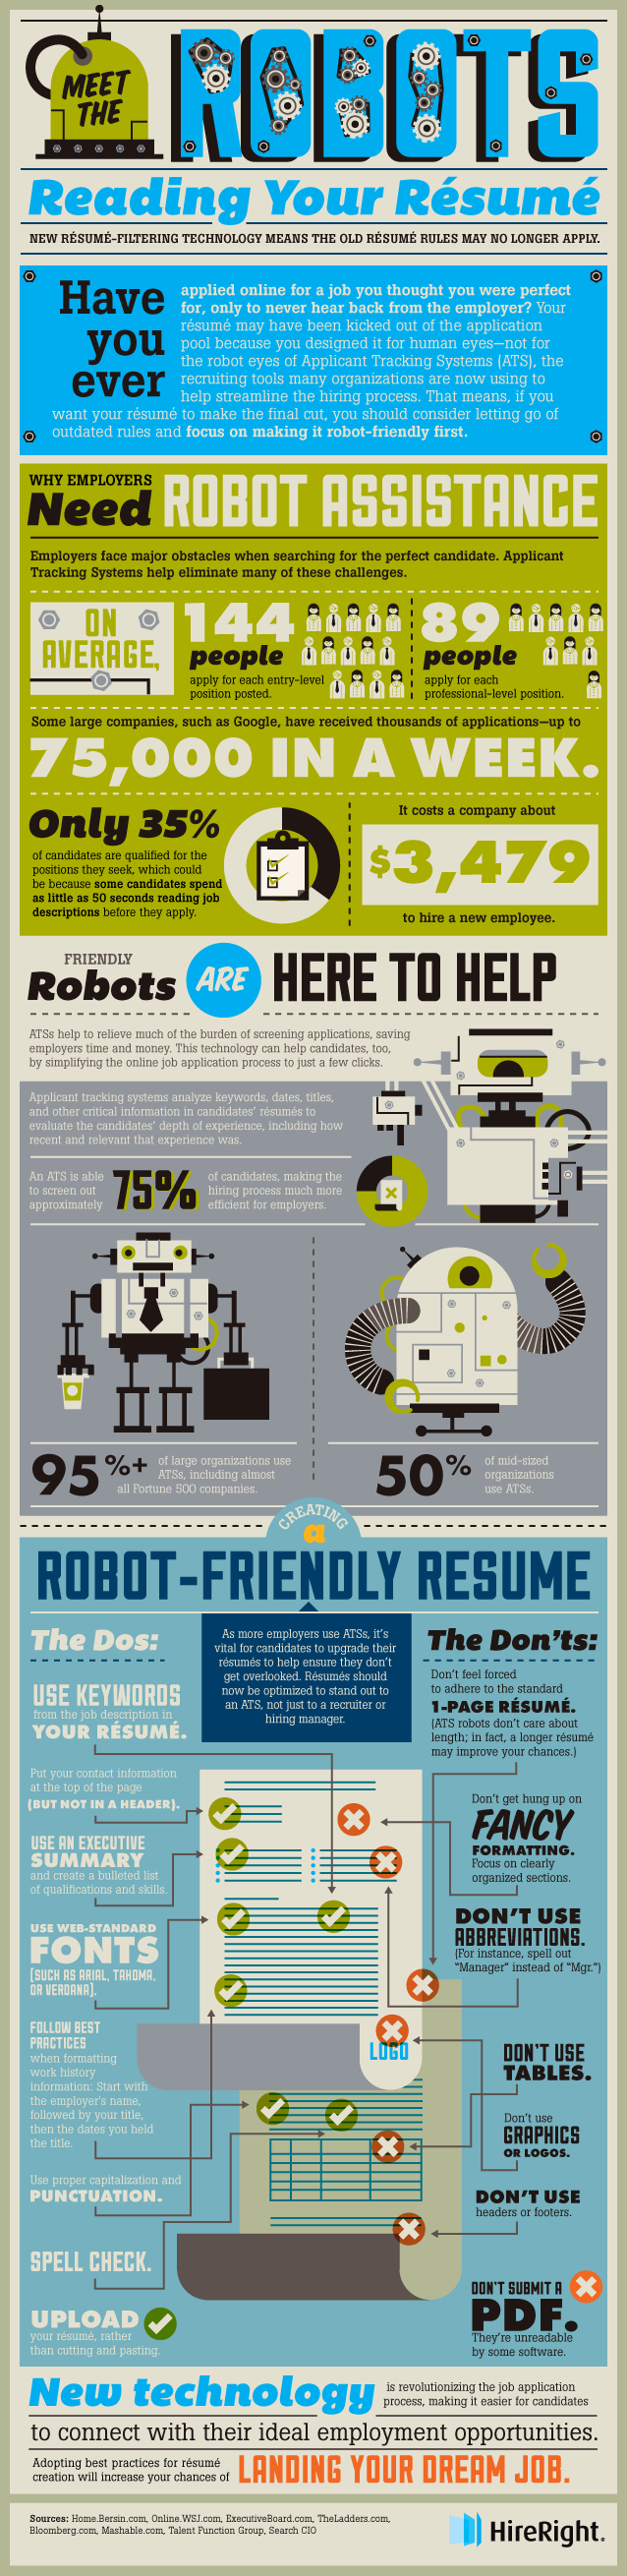 resume Resume Eye Tracking resumes li profiles cover letters meet the robots reading your resume an infographic by hireright